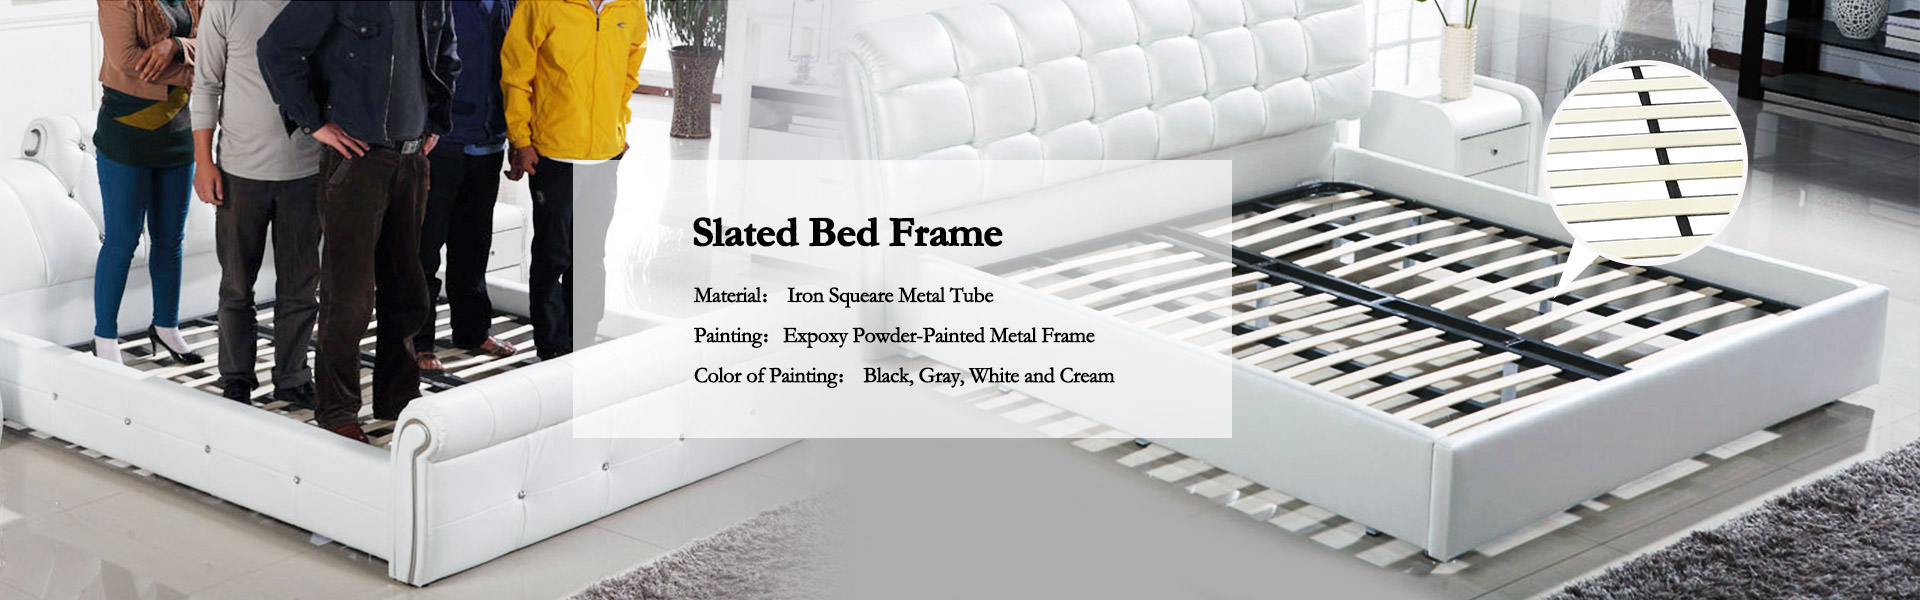 Slated-Bed-Frame